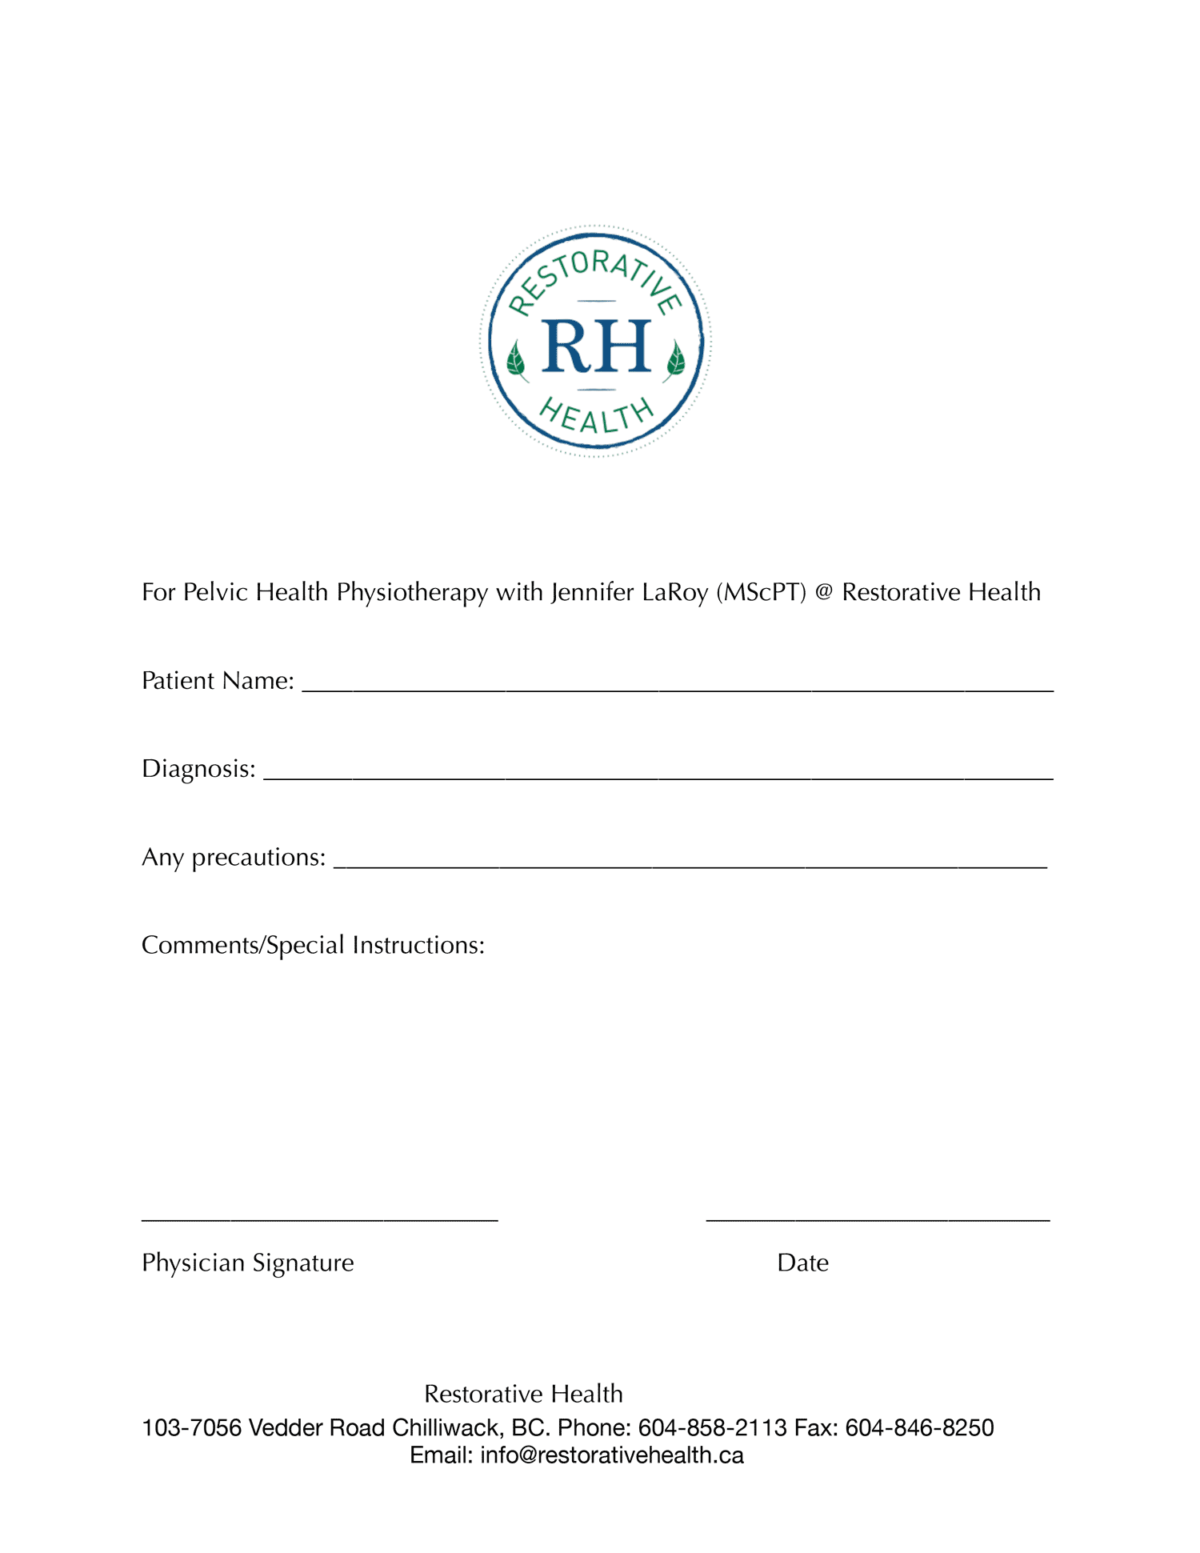 Restorative Health Pelvic Health Physiotherapy Referral eForm